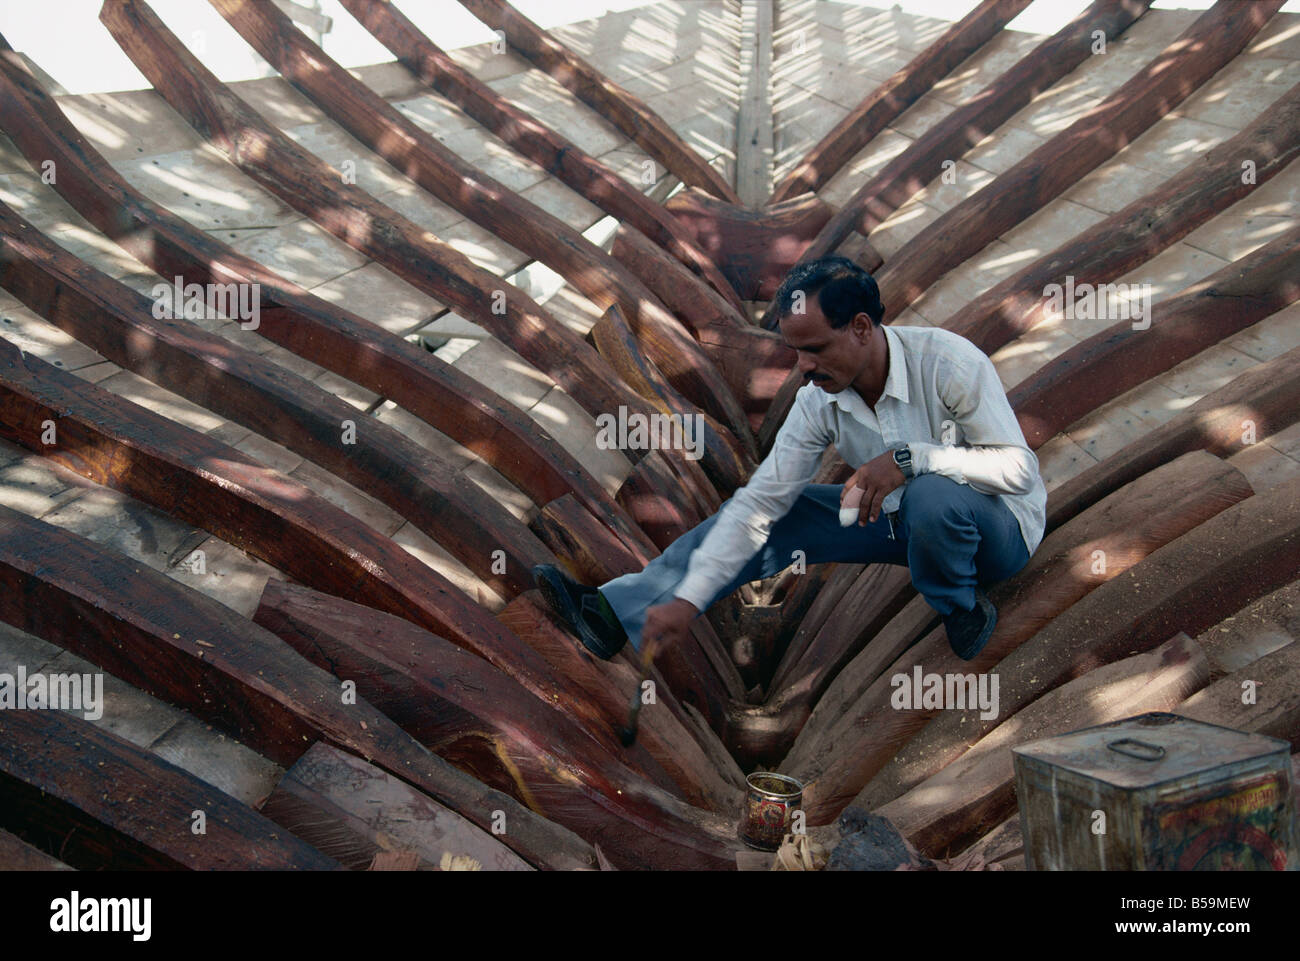 Dhow construction, Manama, Bahrain, Middle East - Stock Image